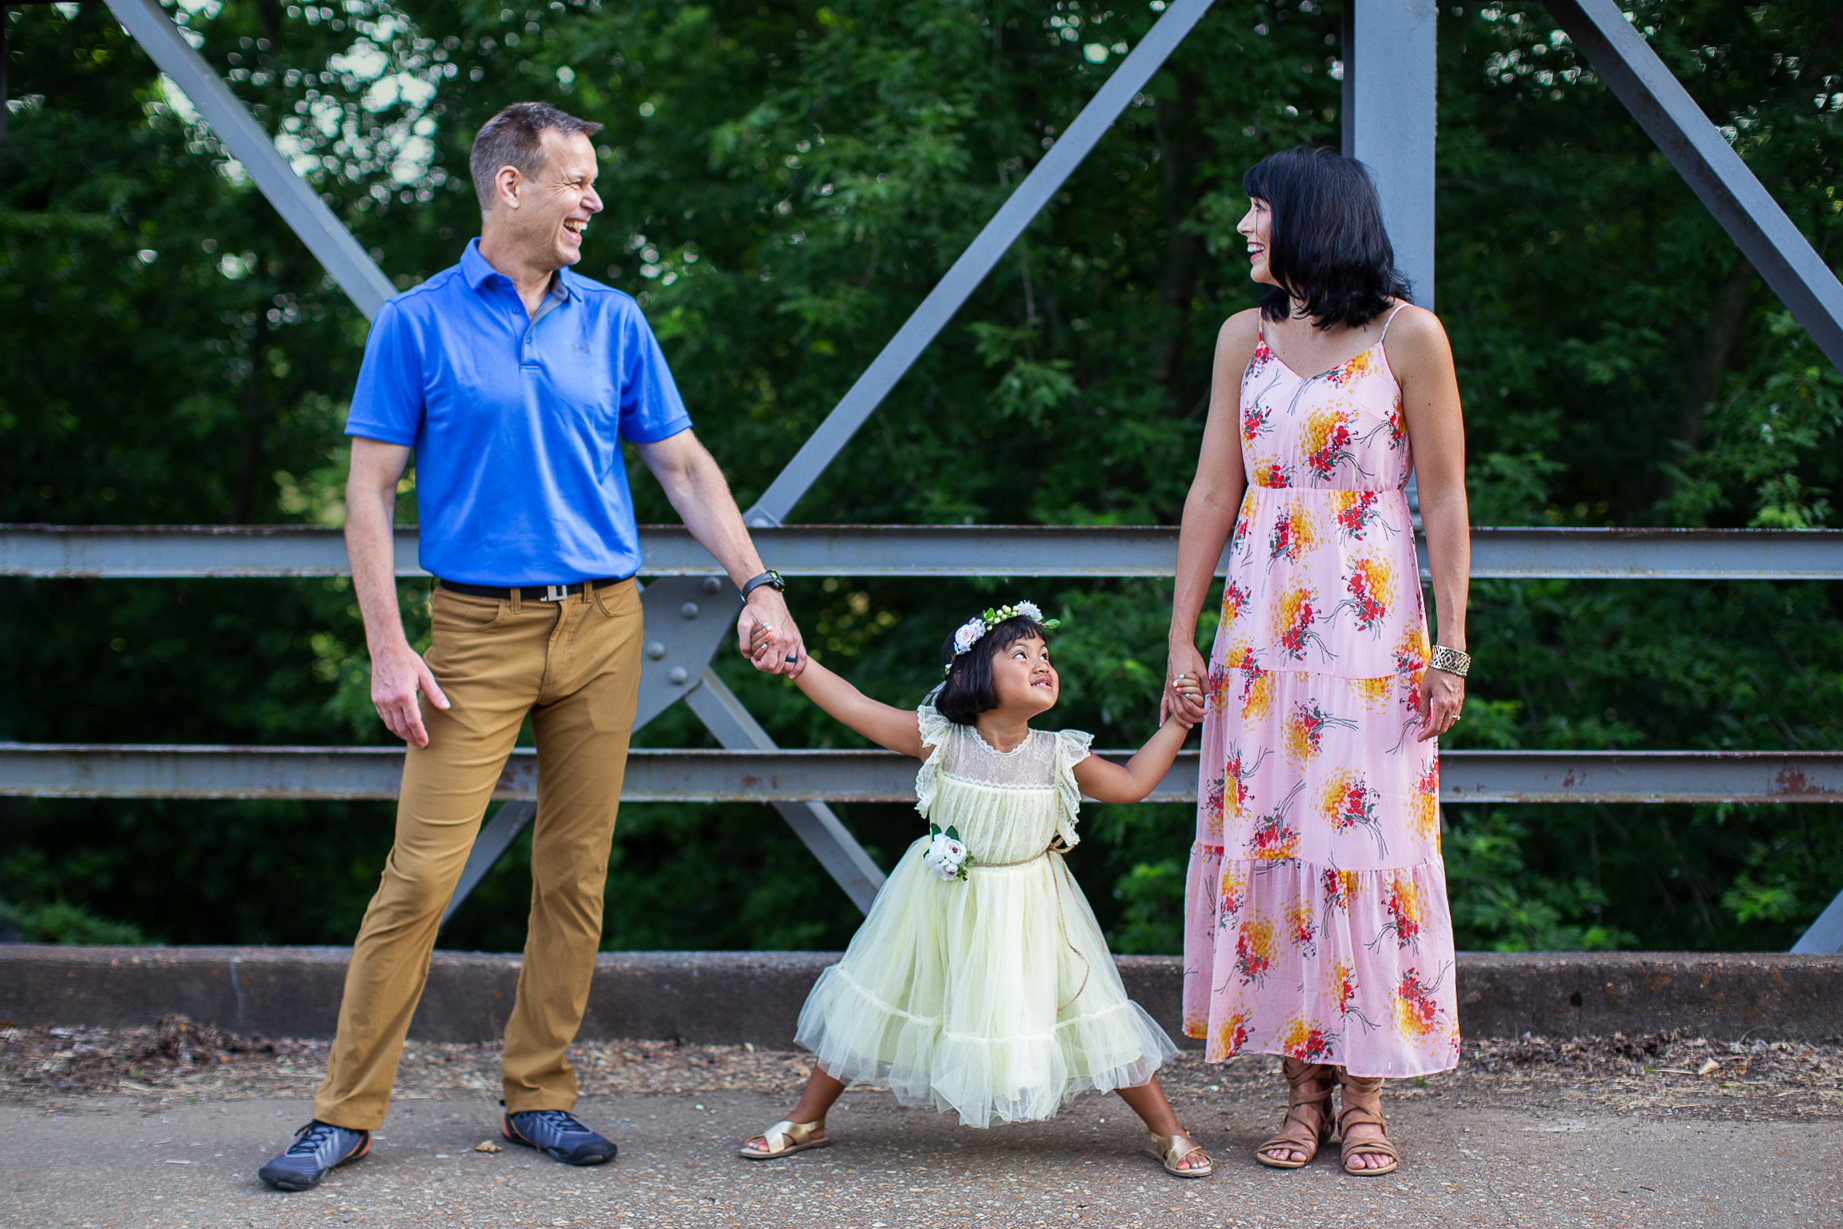 One of my favorite places for a family session— the bridge near Baldwin Baptist Church — as seen on True Detective, Season 3! Of course, this has been a long standing go-to for area photographers in Northwest Arkansas, and it's no secret why. The rustic iron and chipped concrete give this location just the right mix of charm and history.